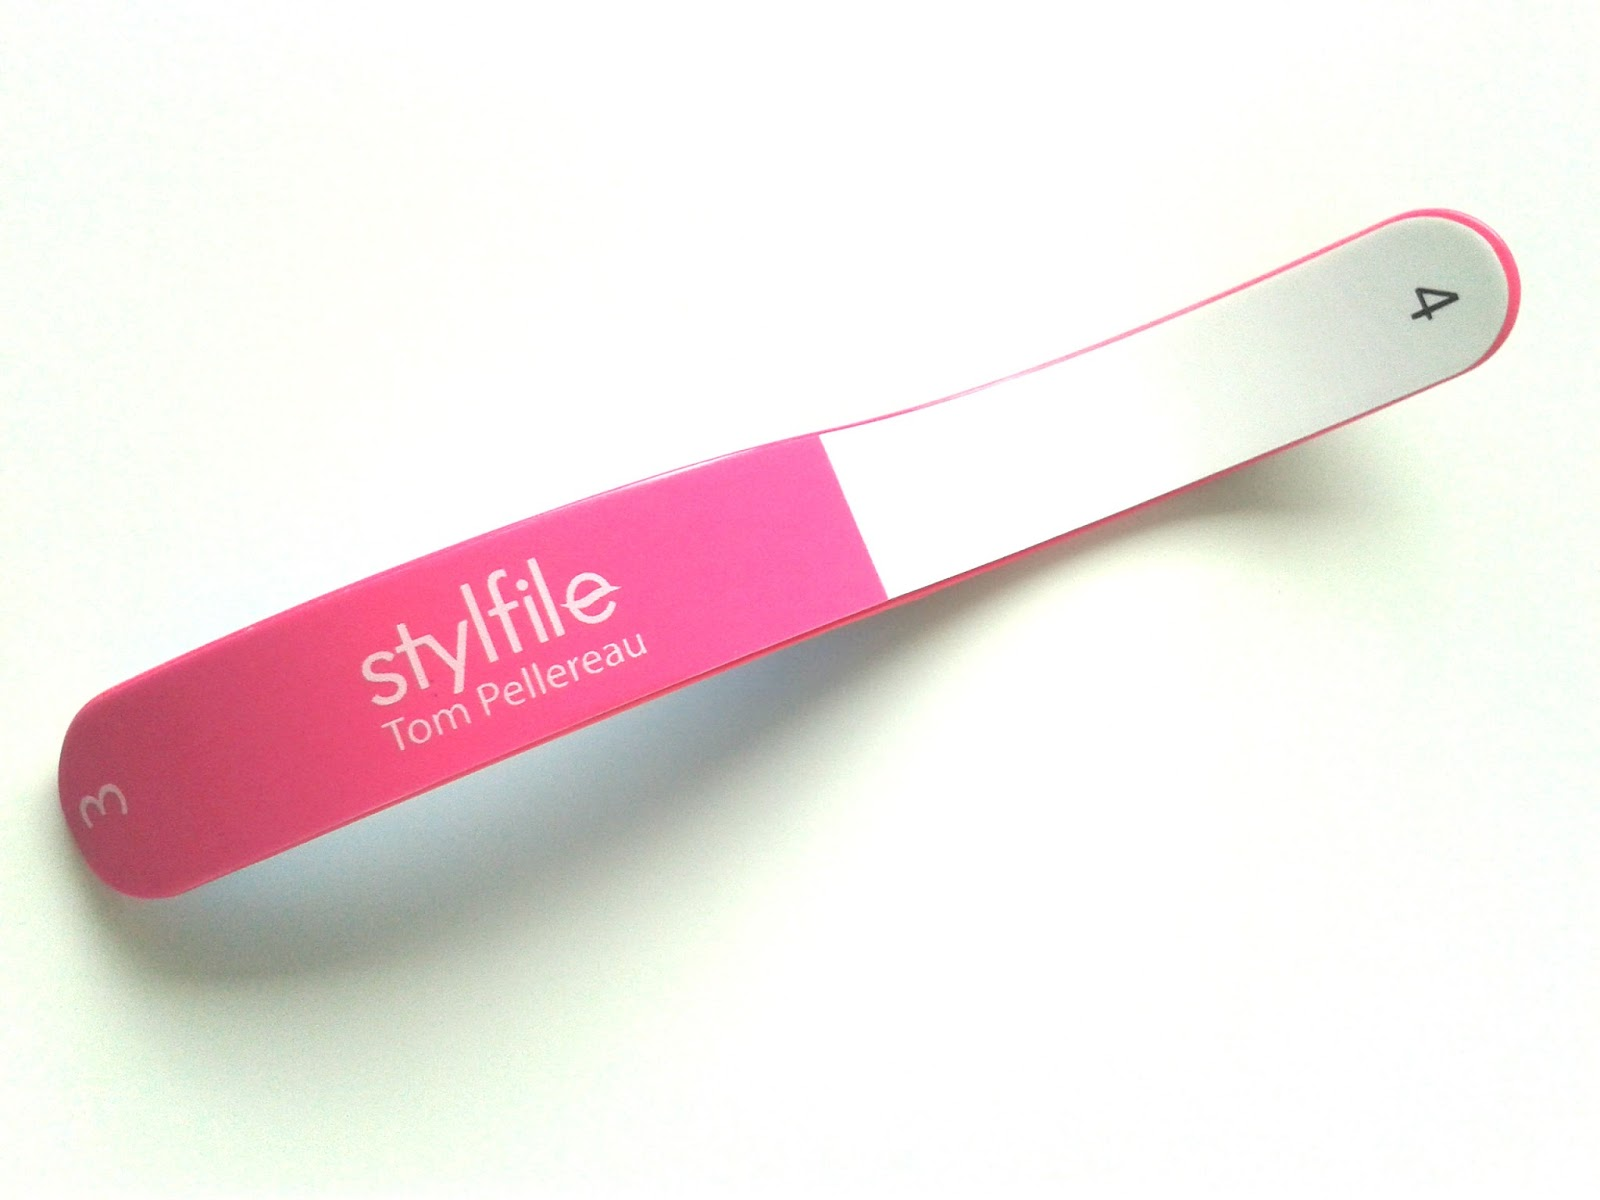 Stylfile S-buffer review